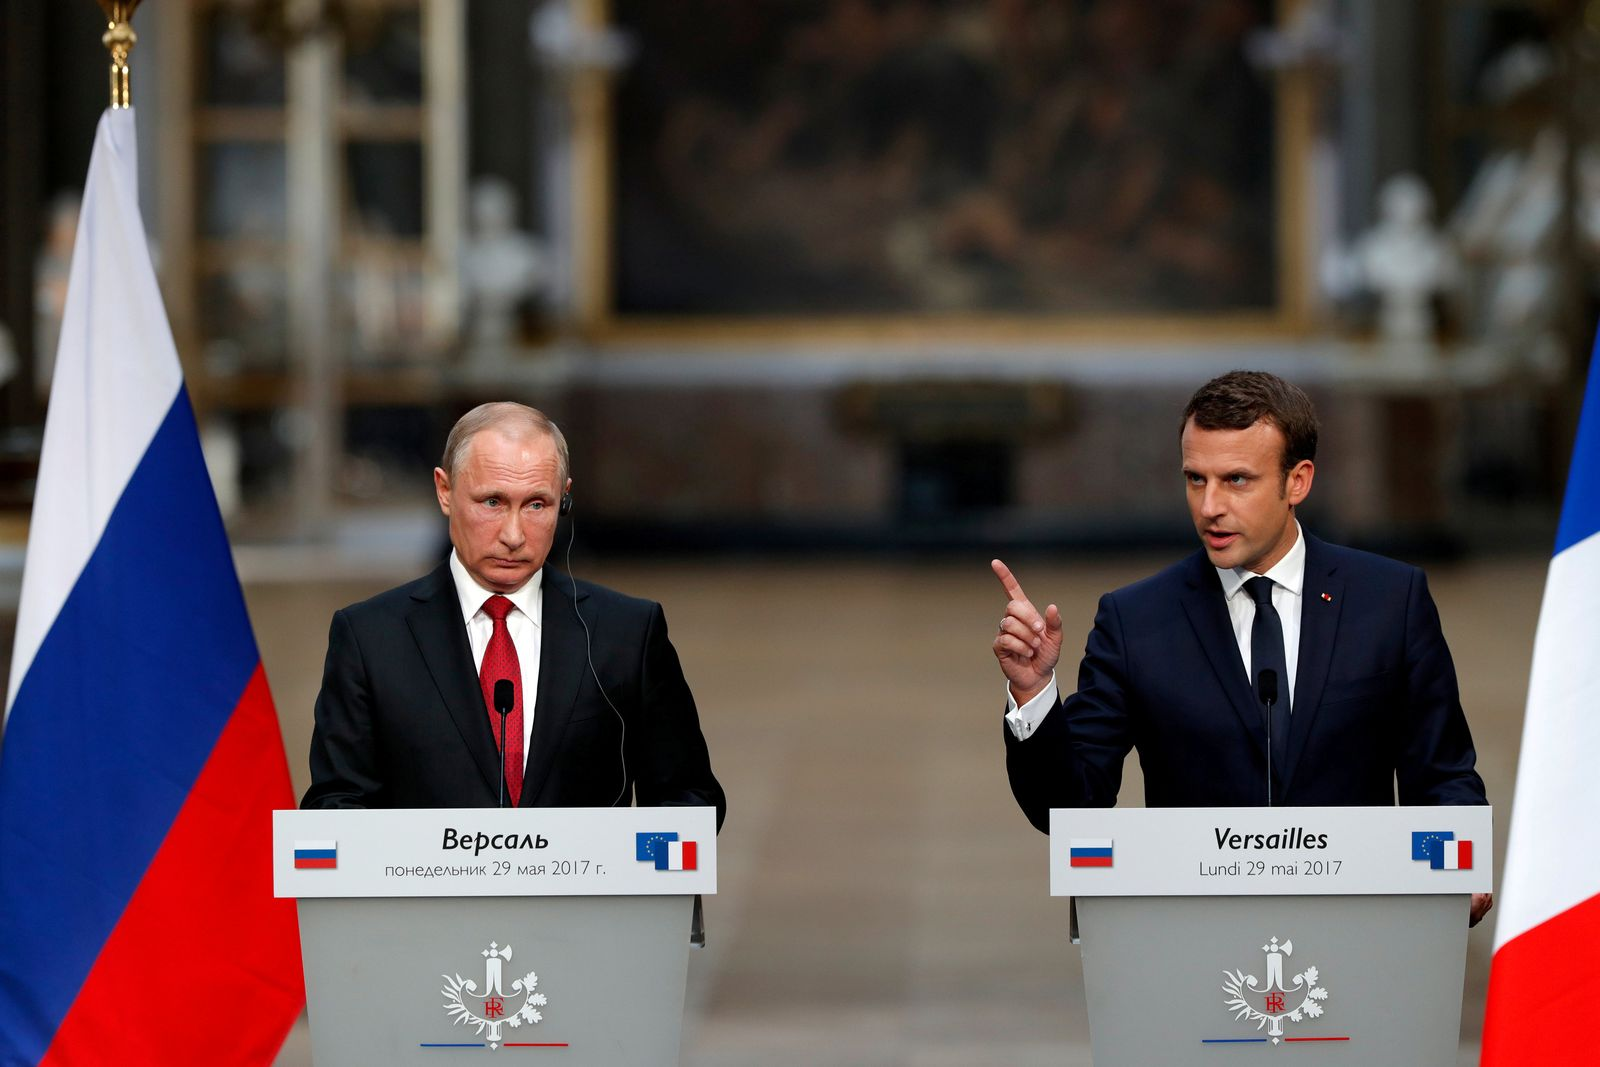 FRANCE-RUSSIA/